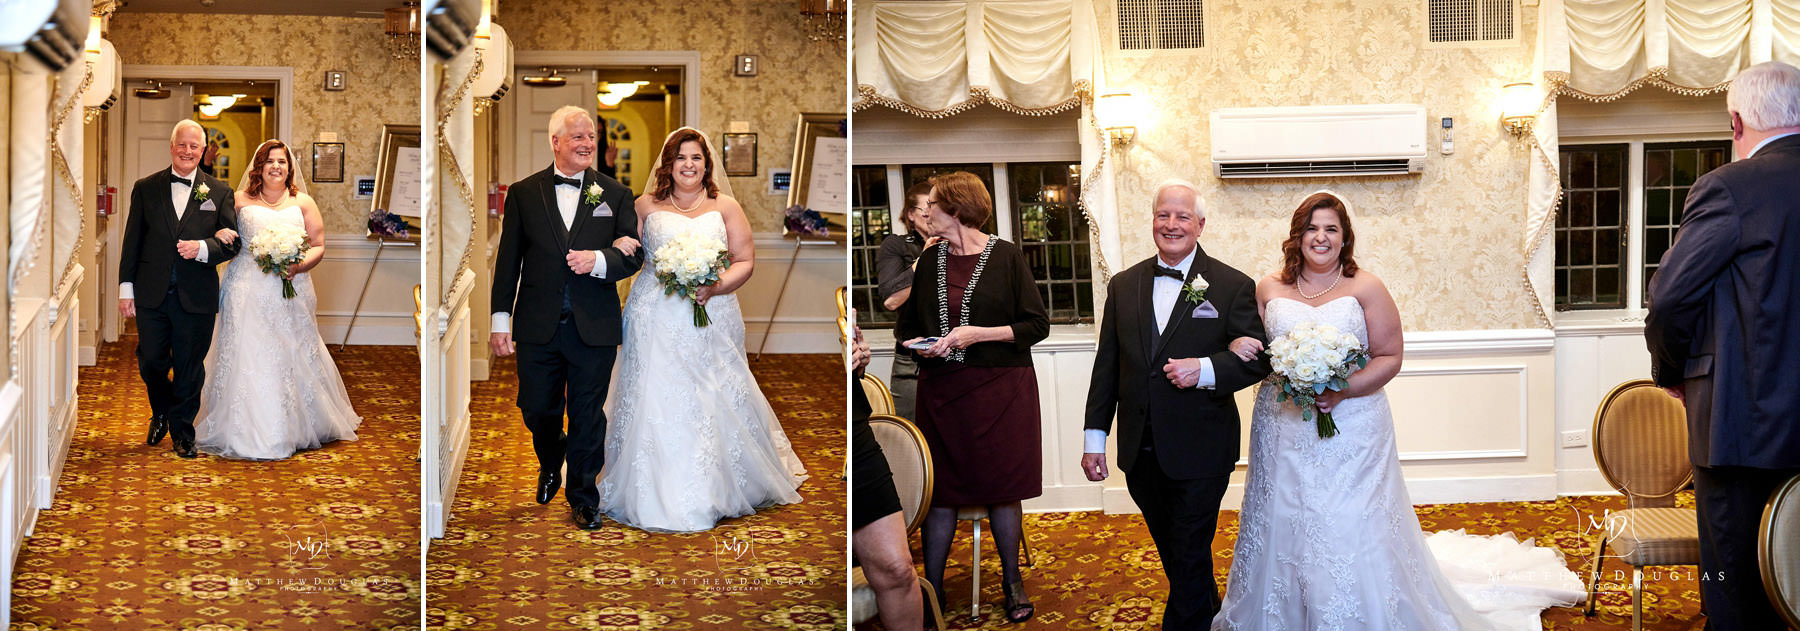 Nassau Inn wedding ceremony photo